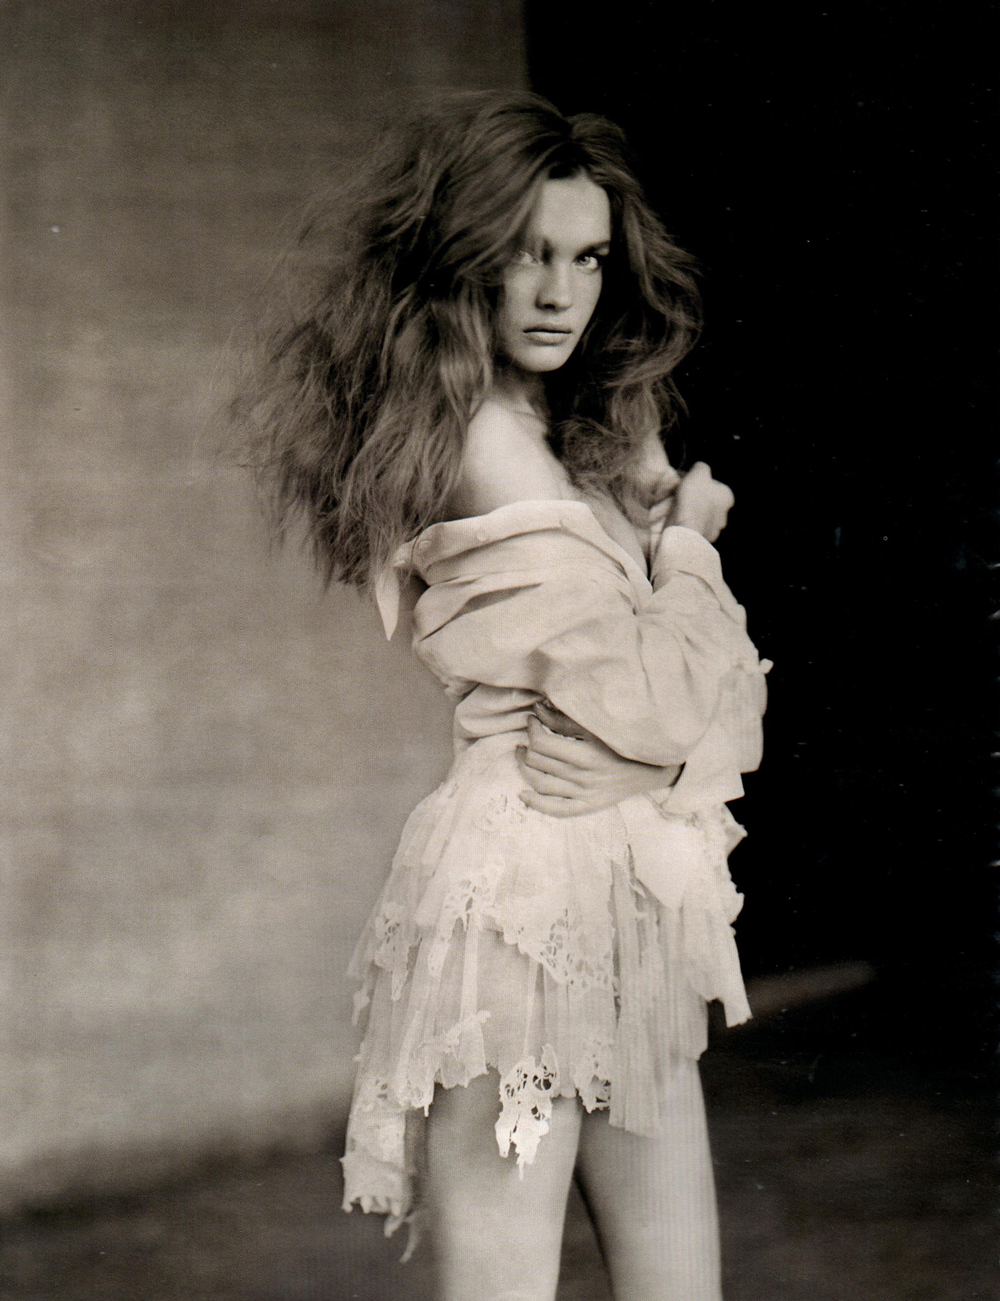 Natalia Vodianova in Vogue Russia March 2008 (photography: Paolo Roversi, styling: Patti Wilson) via fashioned by love british fashion blog